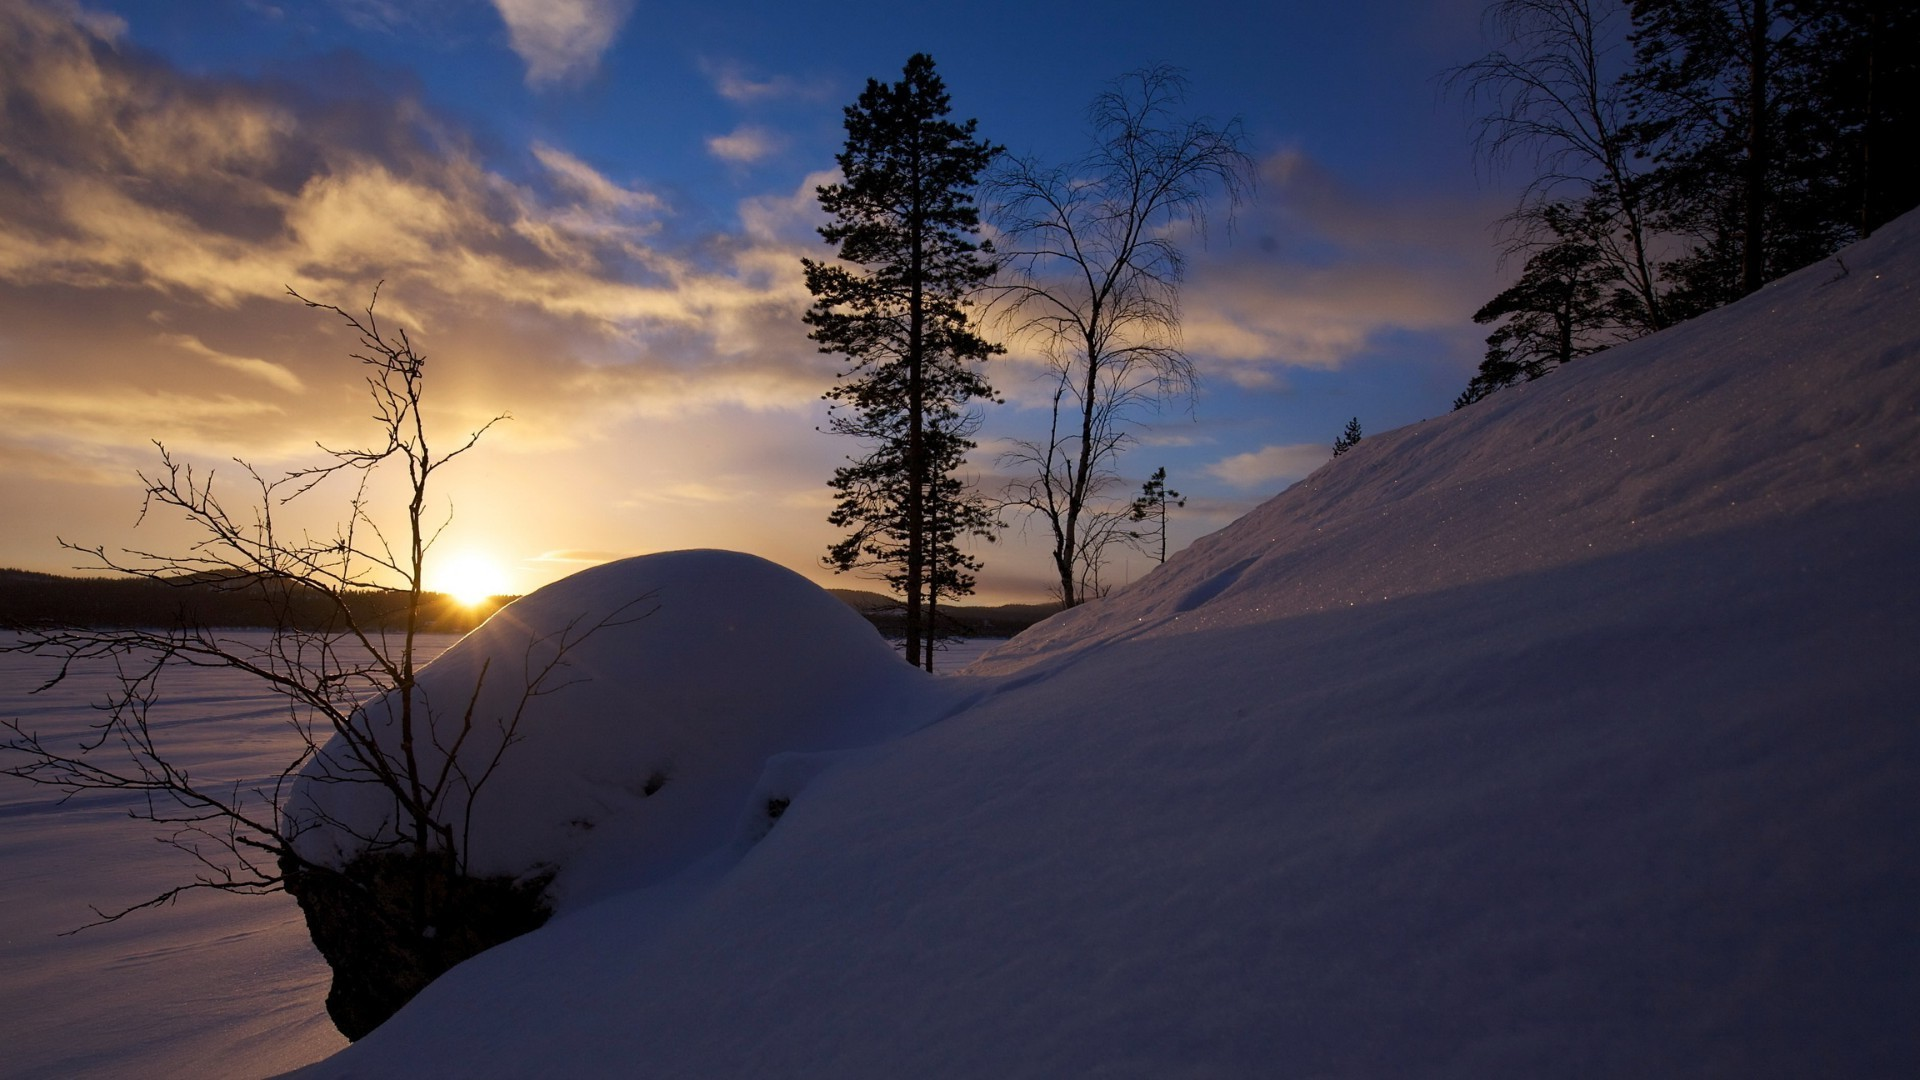 winter snow landscape dawn mountain tree cold sunset weather sky evening scenic light nature ice hill fair weather backlit frozen